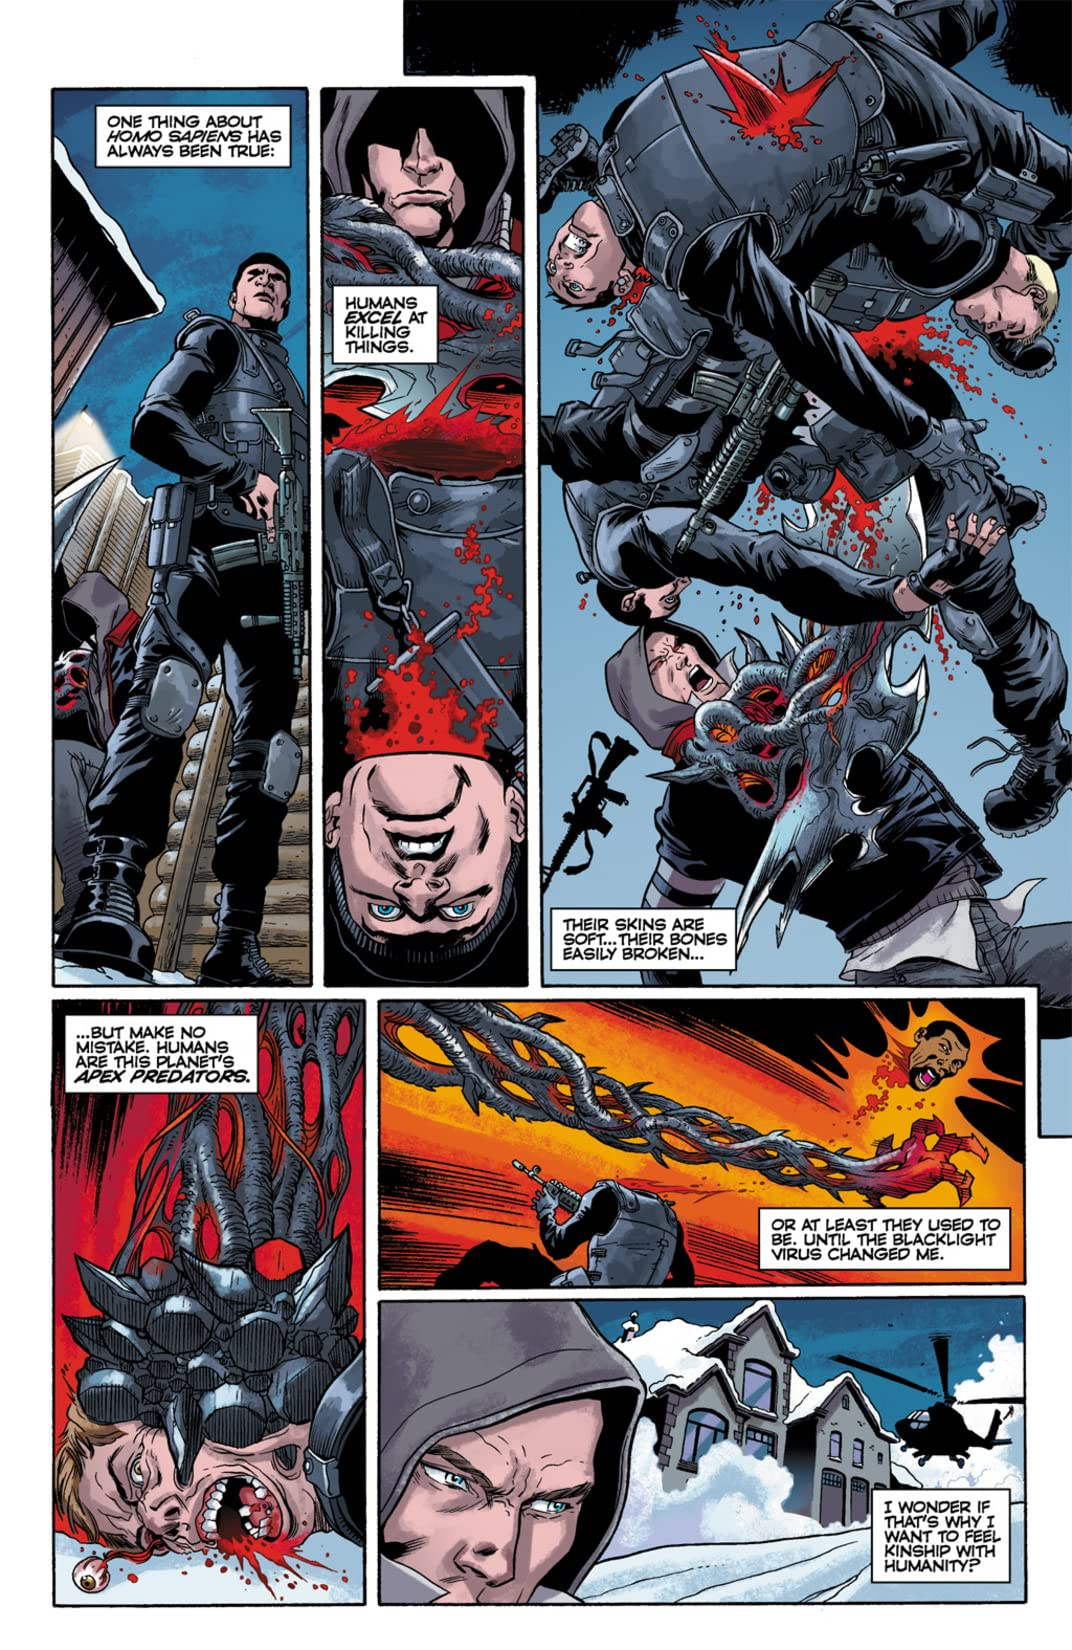 Prototype 2 #2: The Anchor, Part 2